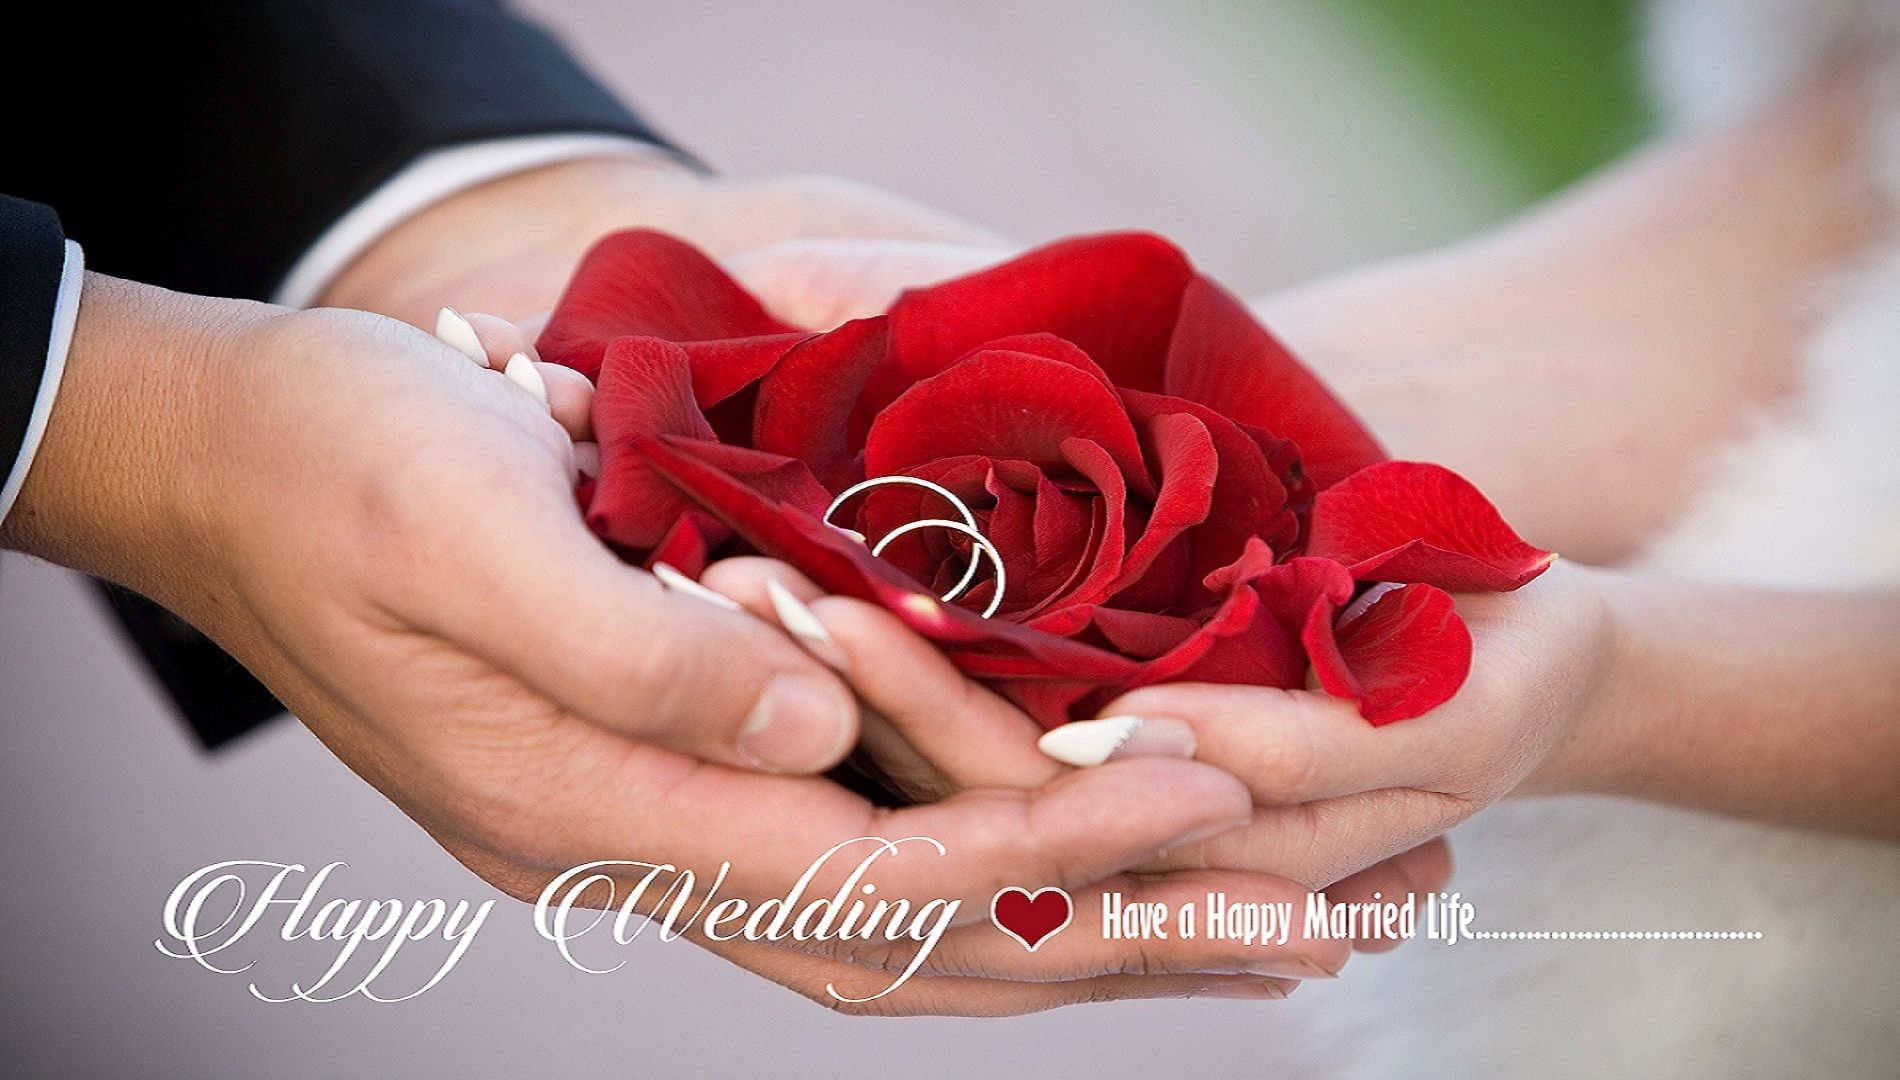 Happy Anniversary Images Happy Anniversary Images Animated Happy 7th Anniversary Images Happy 1 Year Happy Promise Day Promise Day Images Wedding Wishes Quotes